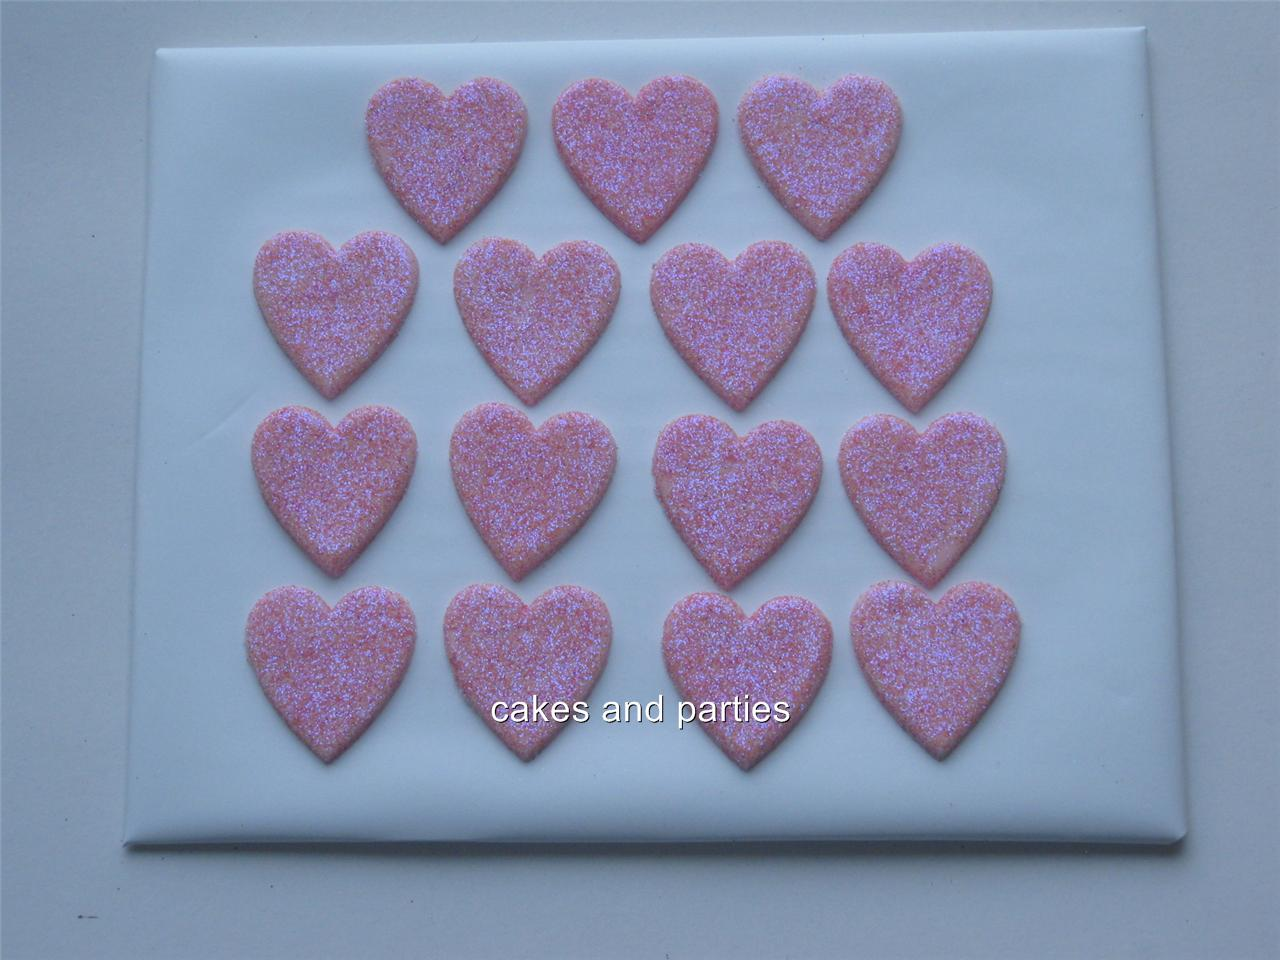 Cake Decorations Edible Glitter : 15xEDIBLE GLITTER HEARTS. CAKE DECORATIONS - VARIOUS ...